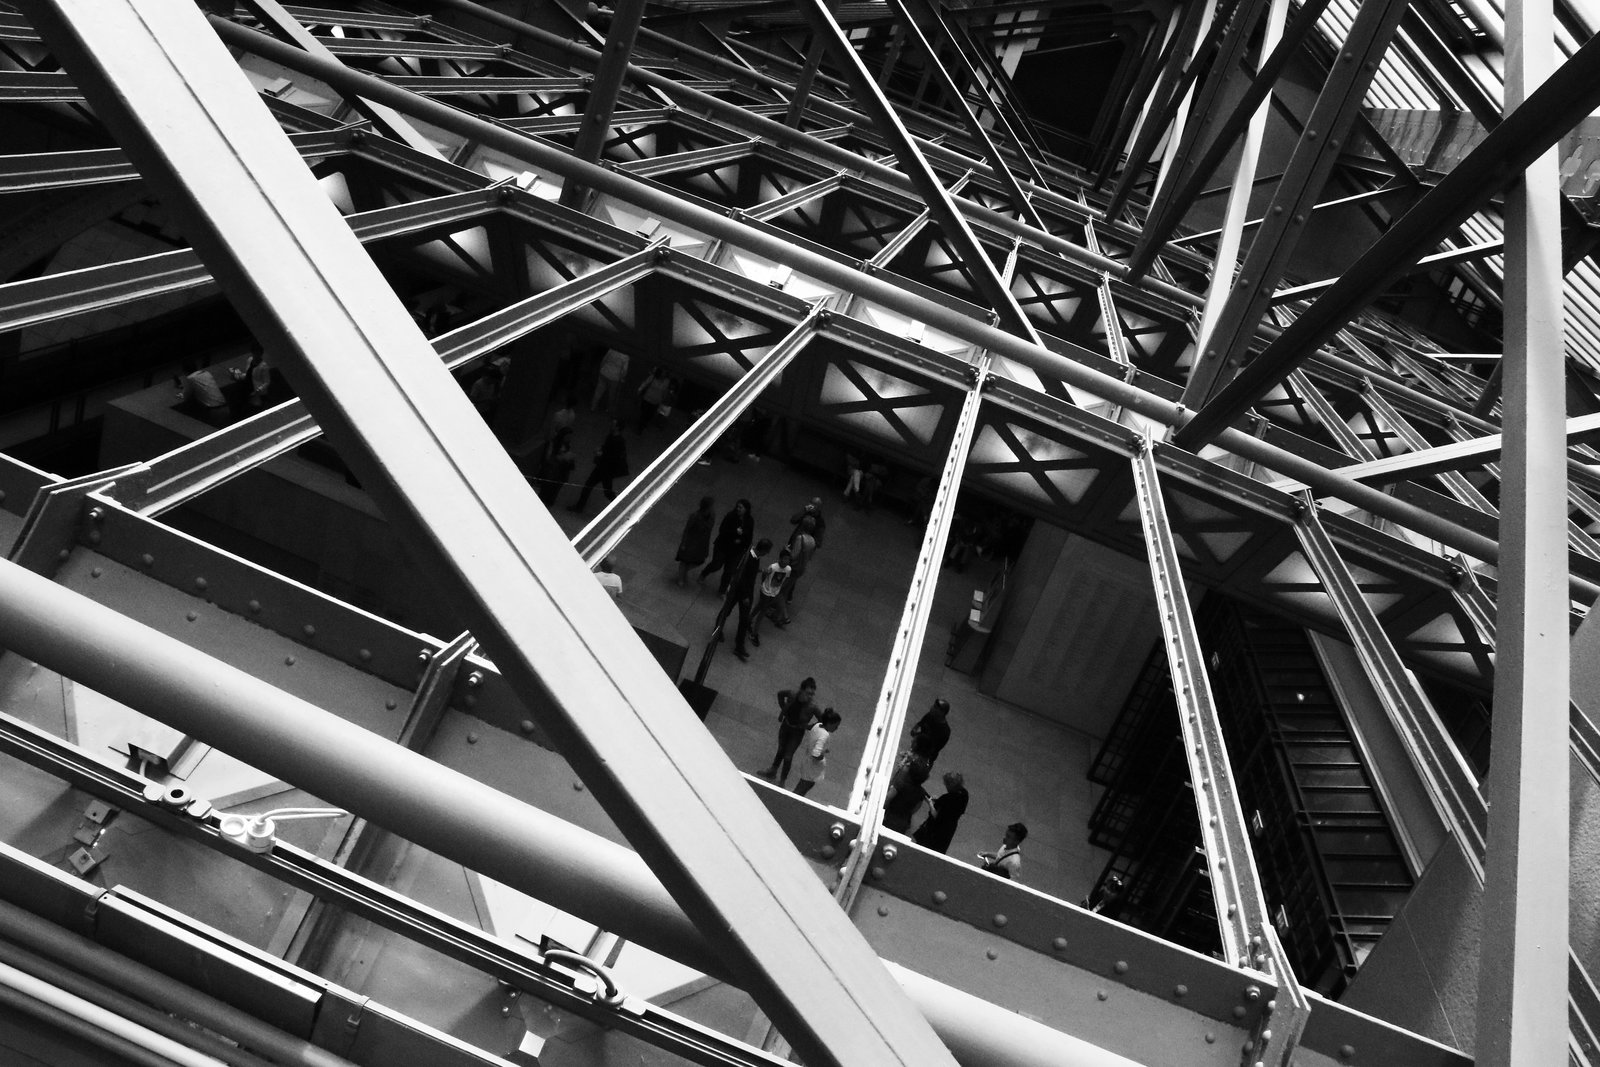 Roofing in Musee d'Orsay in Paris